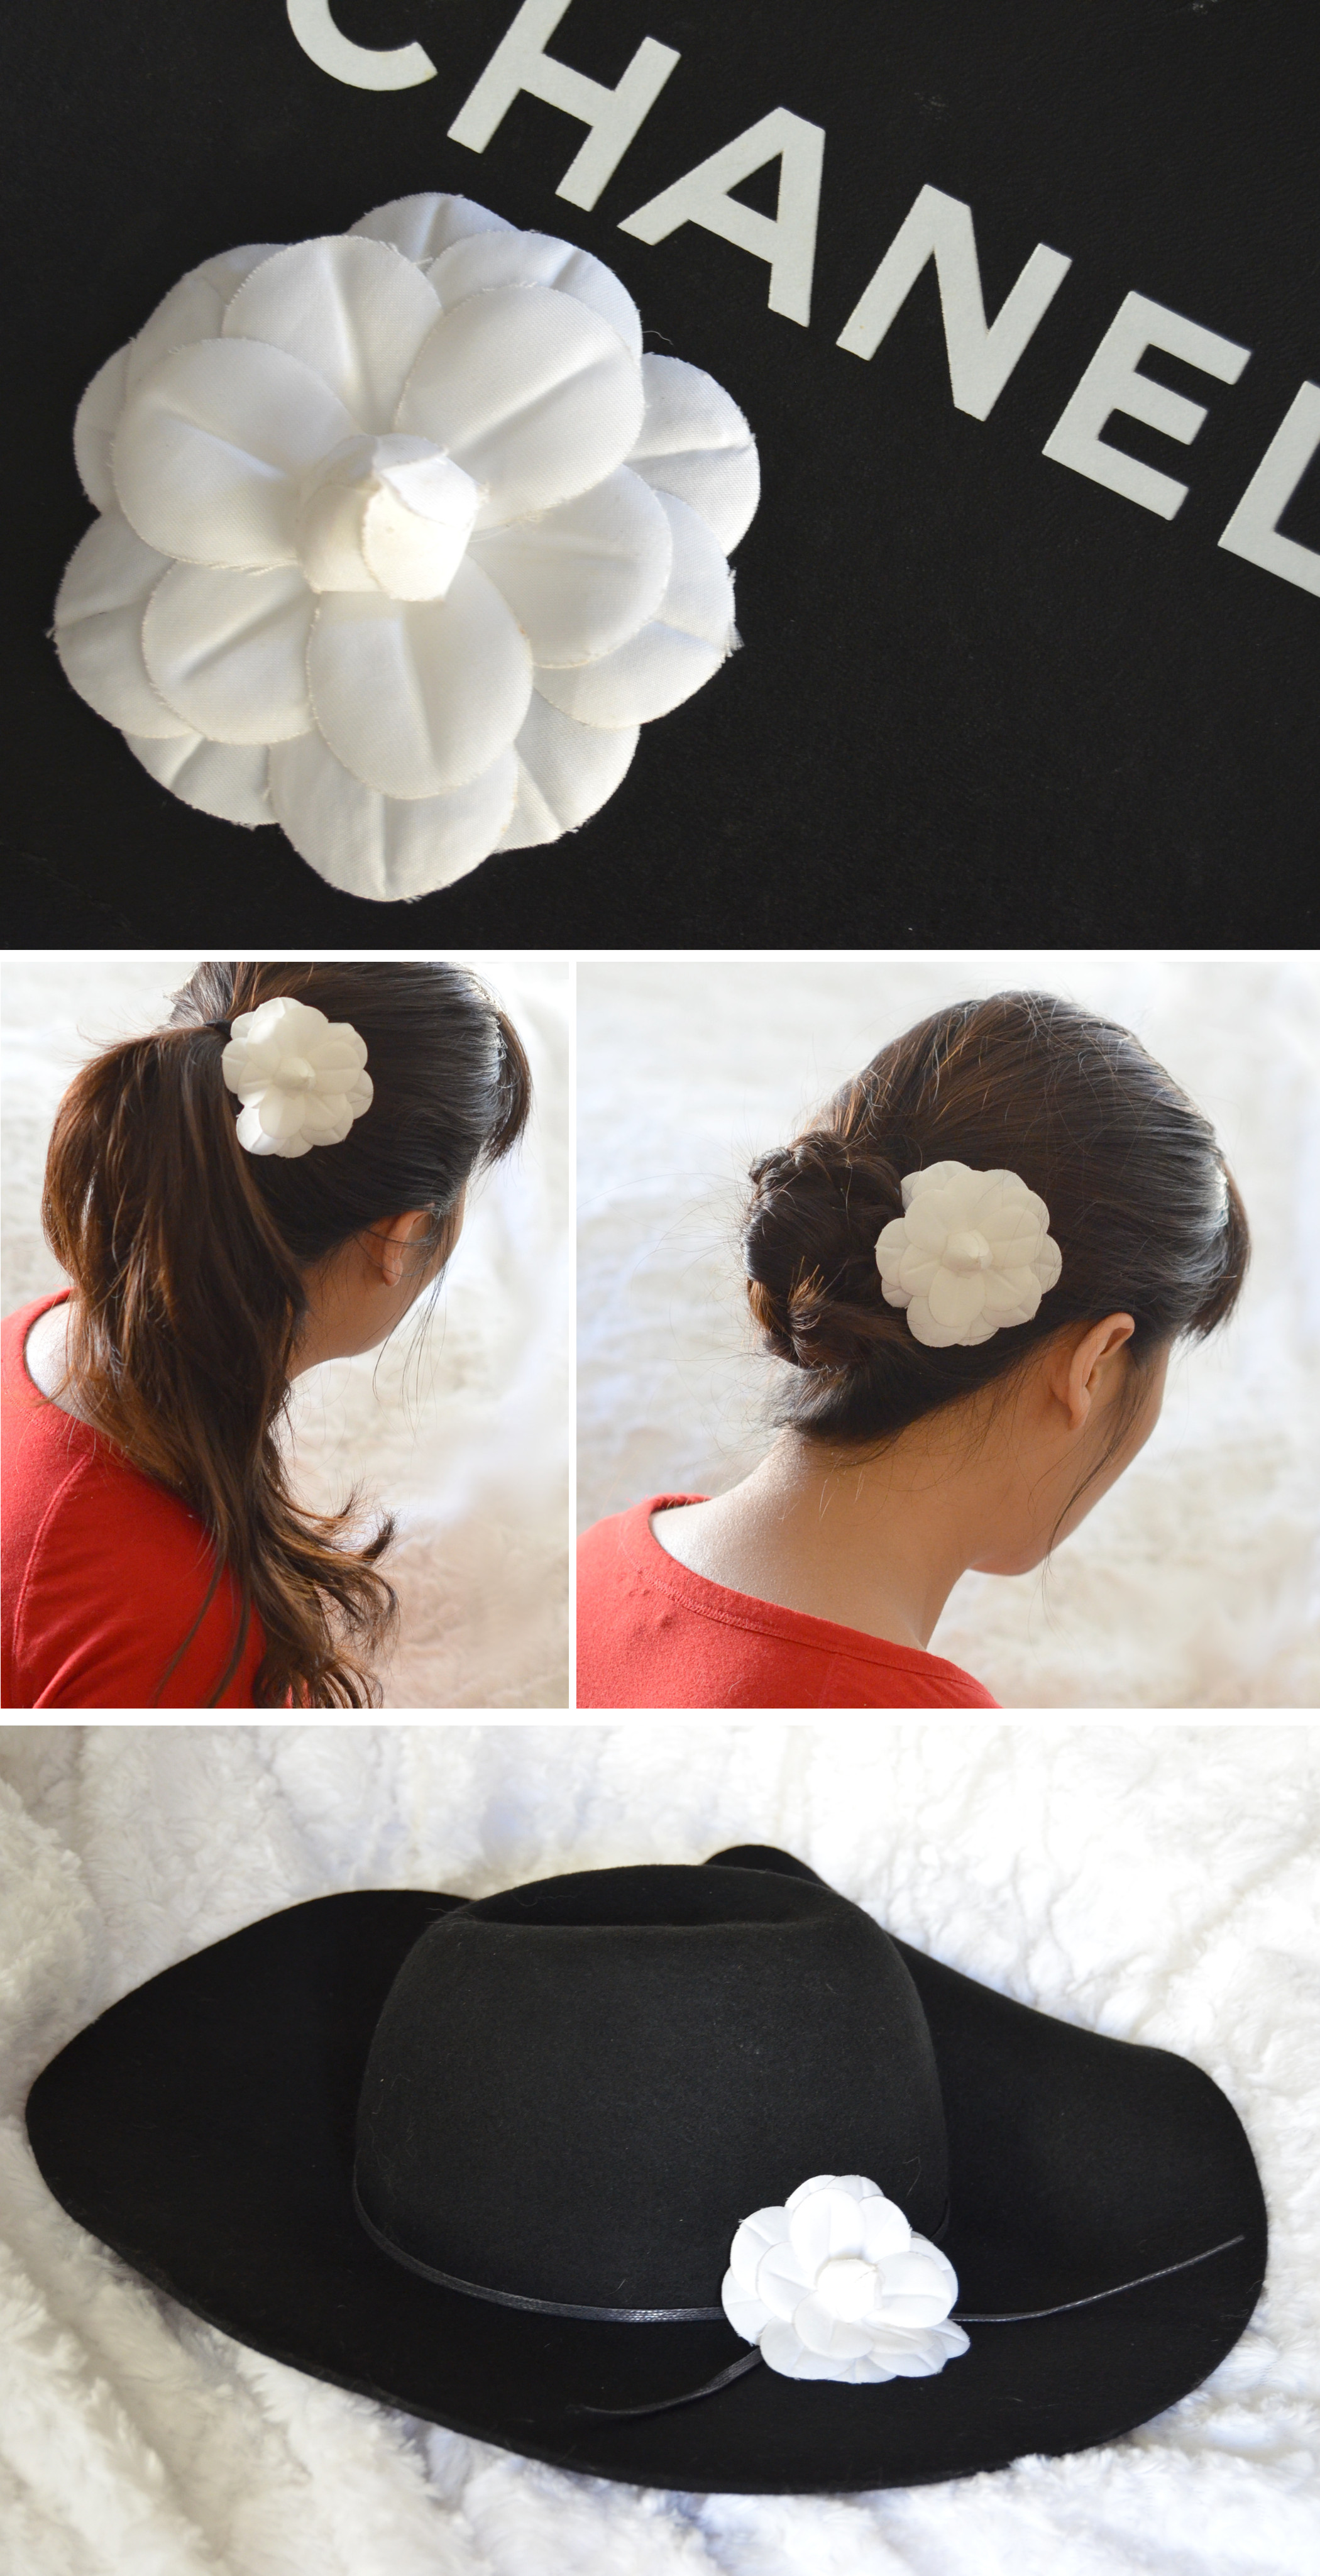 chanel white camellia fabric flower used in hair on hat